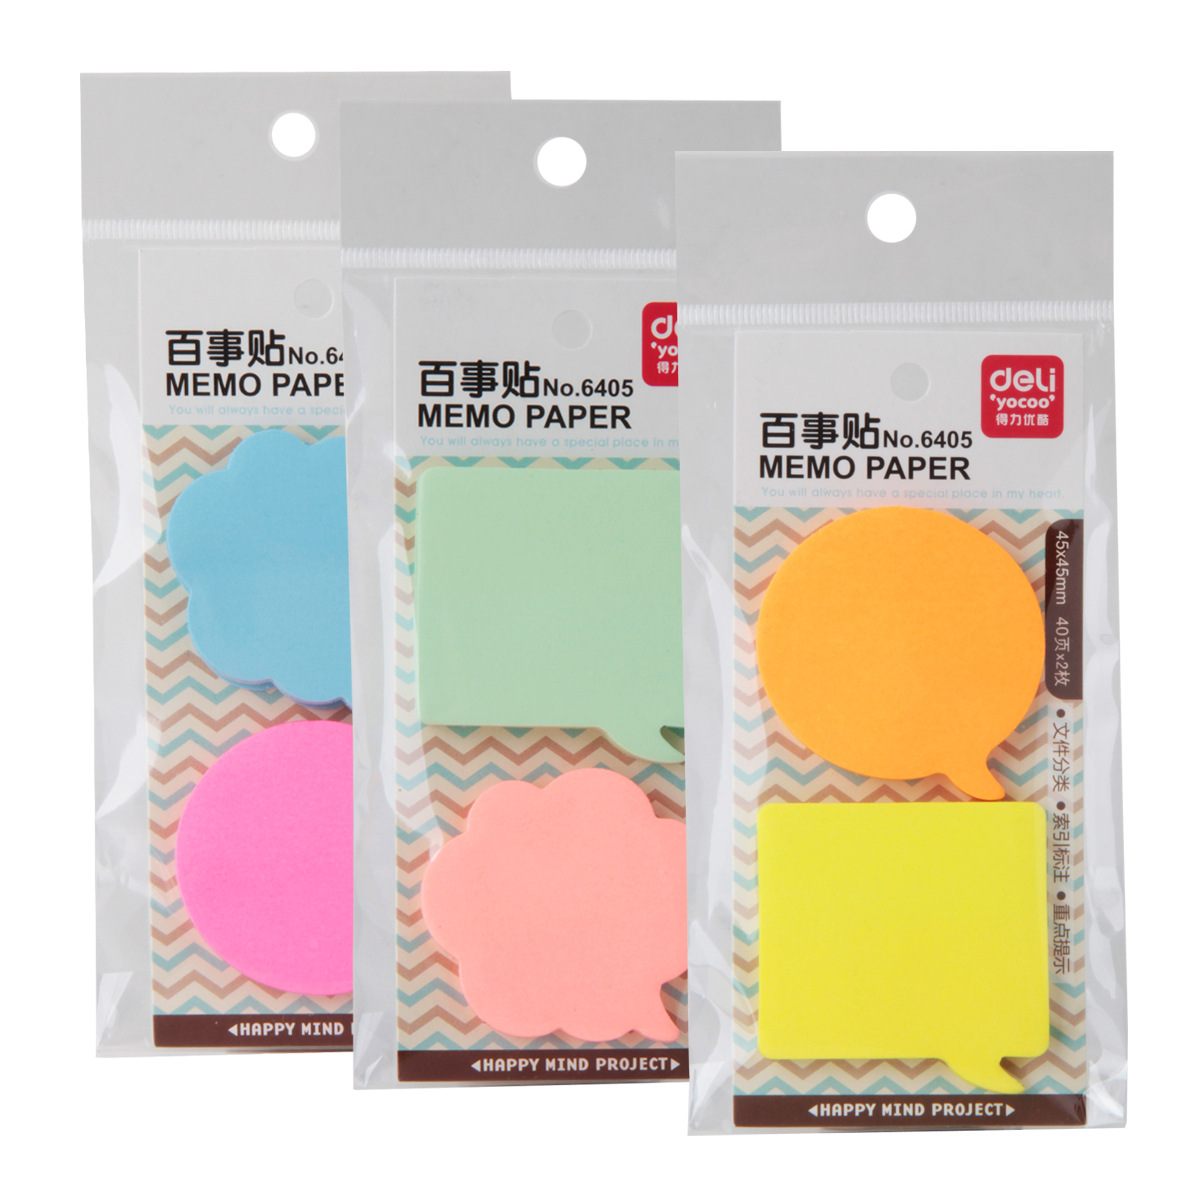 80 Sheets Korean Sticky Notes Creative Post Notepad Memo Pads Office Supplies School Filofax Stationery